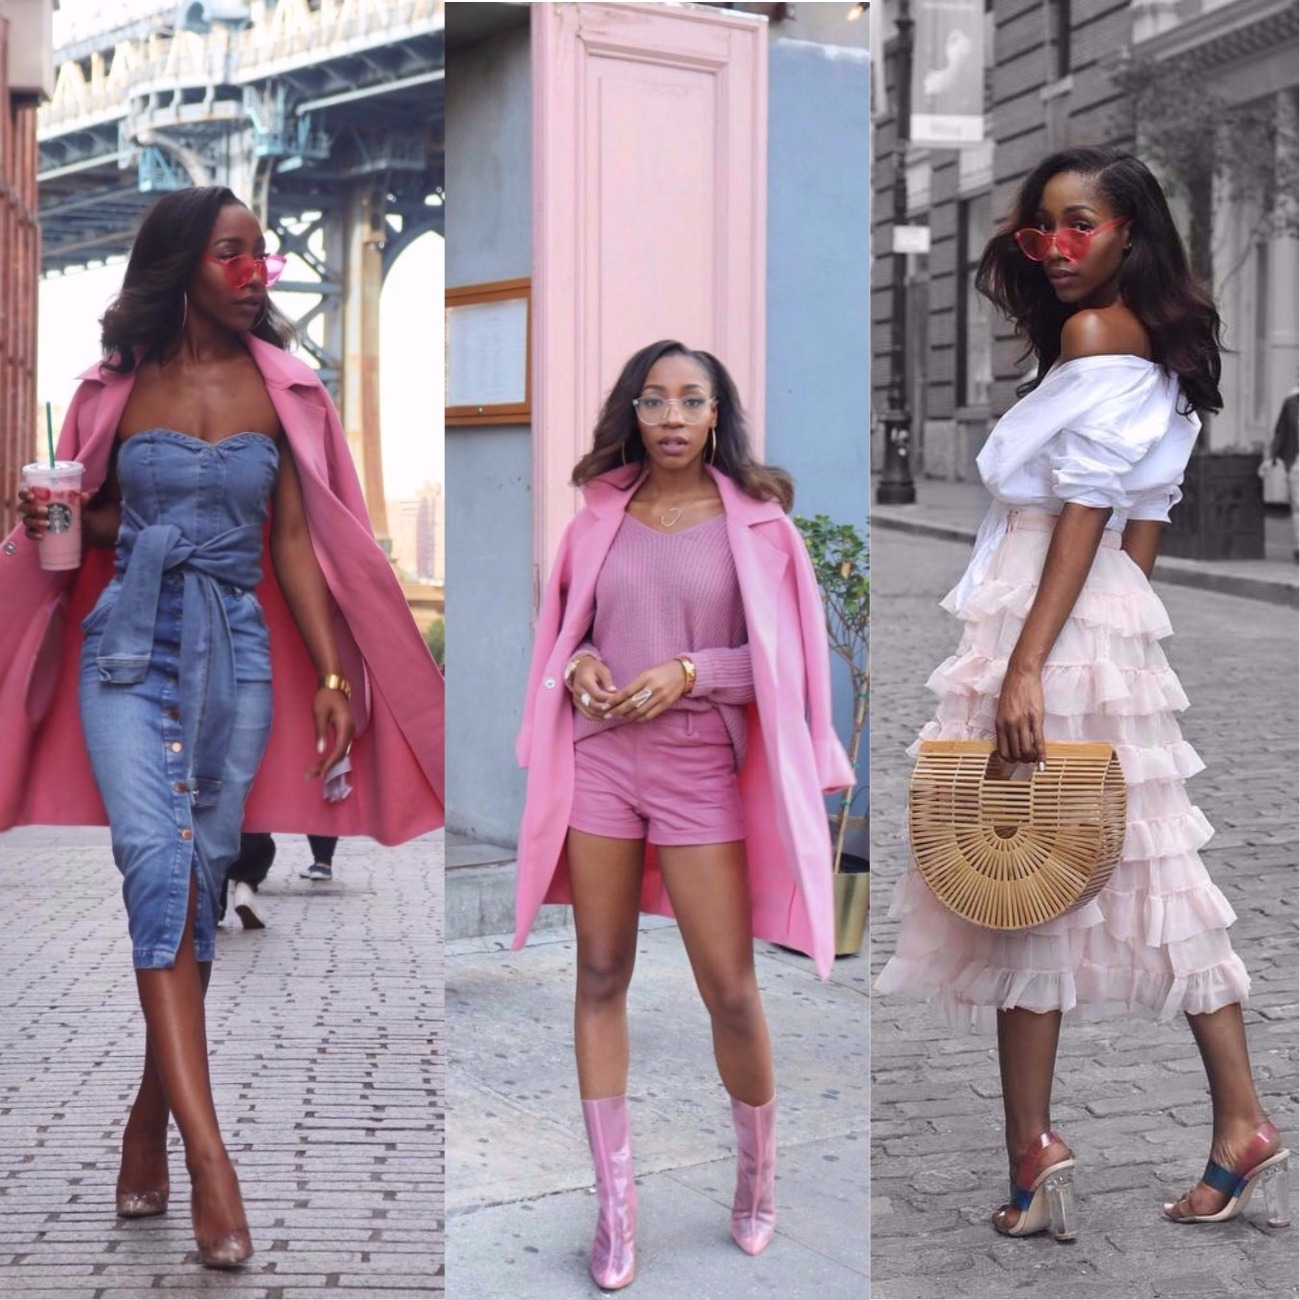 Fashion: Chinyere Adogu Is A Street Style Chic In Pink!